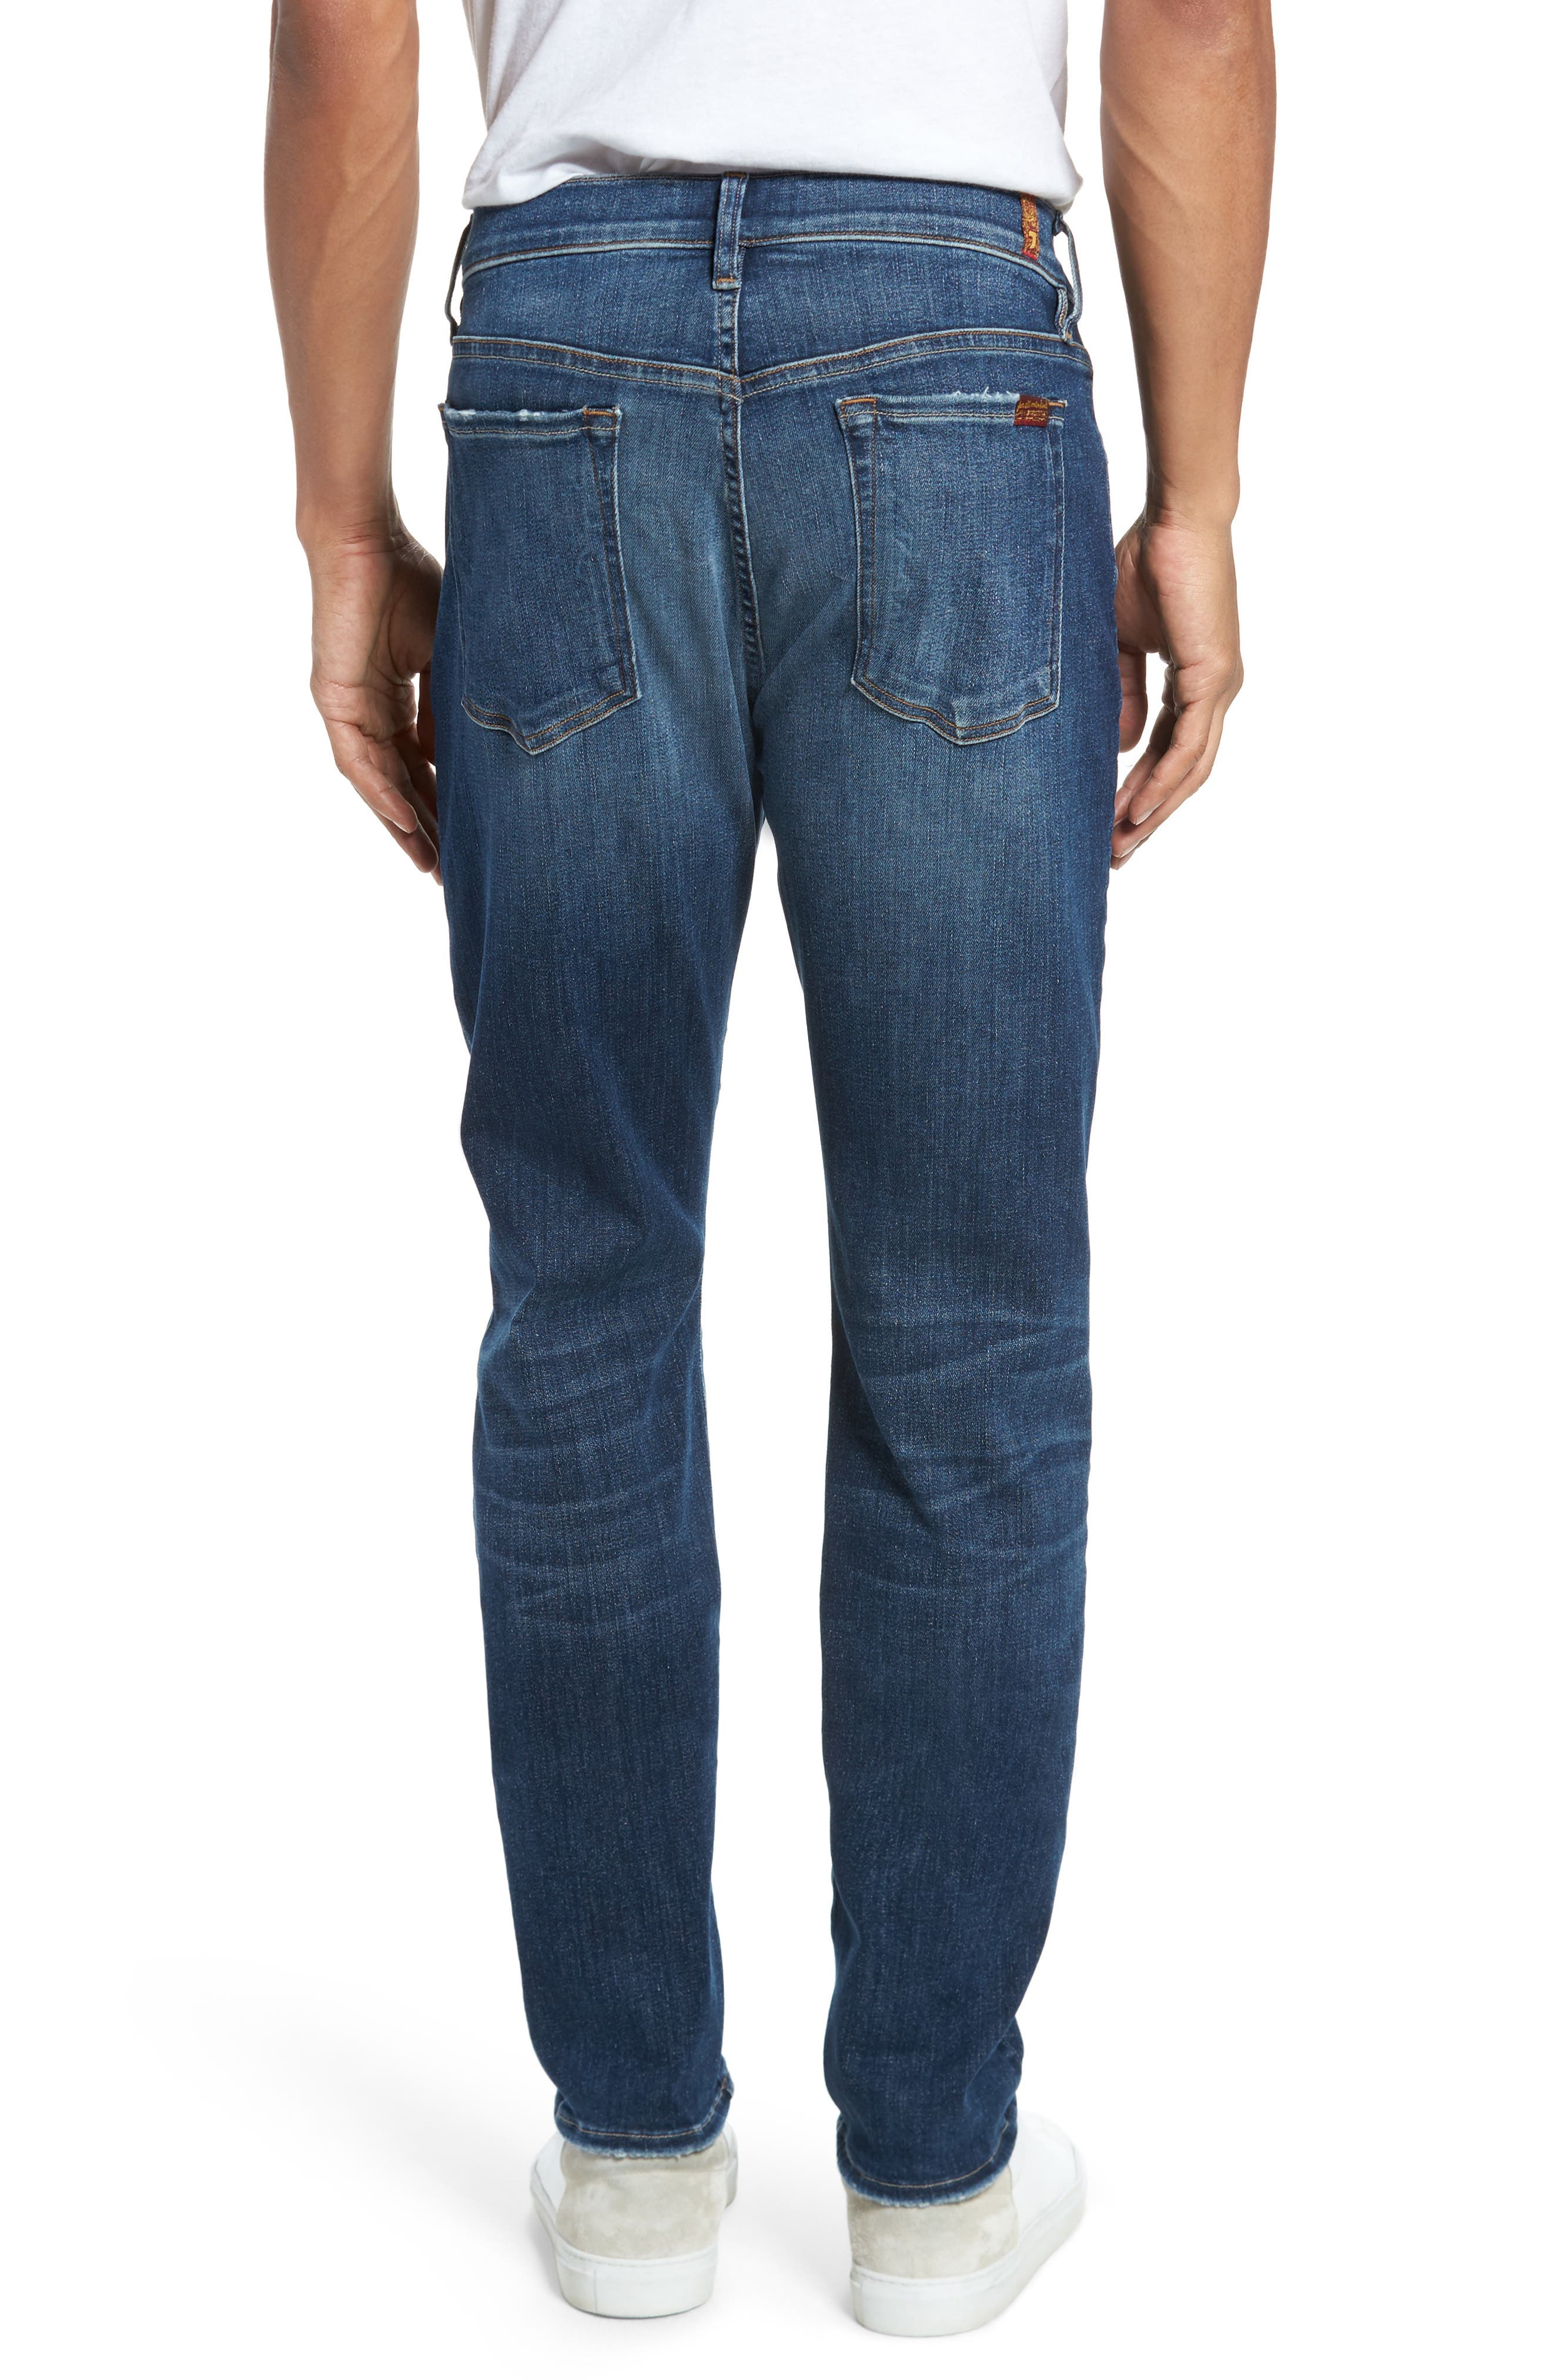 Adrien Slim Fit Jeans,                             Alternate thumbnail 2, color,                             Authentic Euphoria